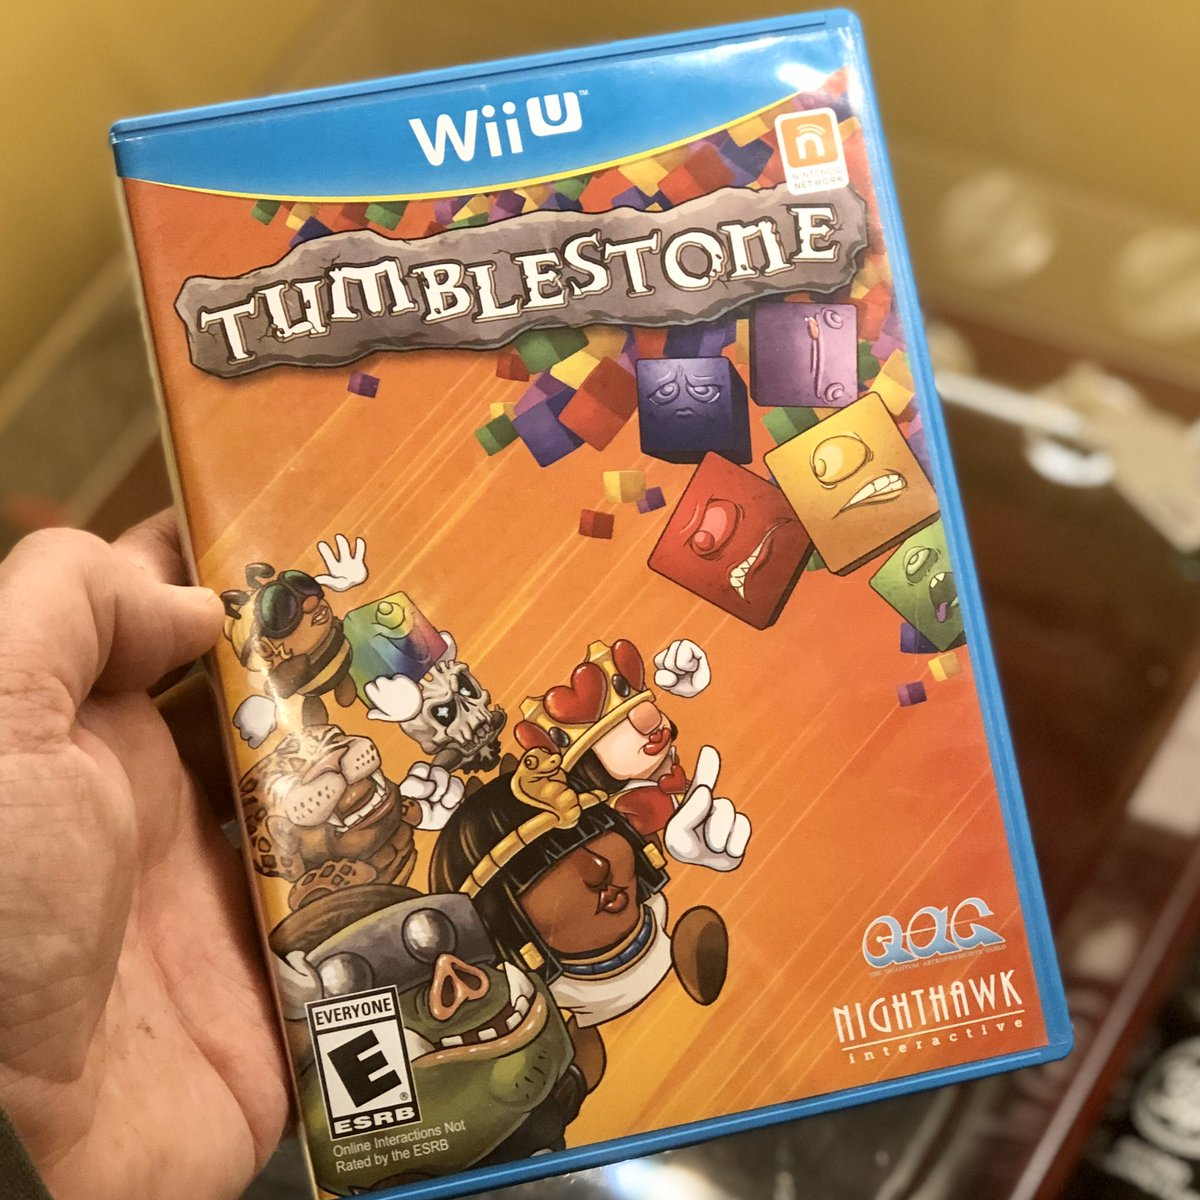 Metal Jesus Rocks On Twitter Found An Uncommon Wii U Game Yesterday At Gamestop Not Super Expensive Yet But Can Be Hard To Find For Wii U